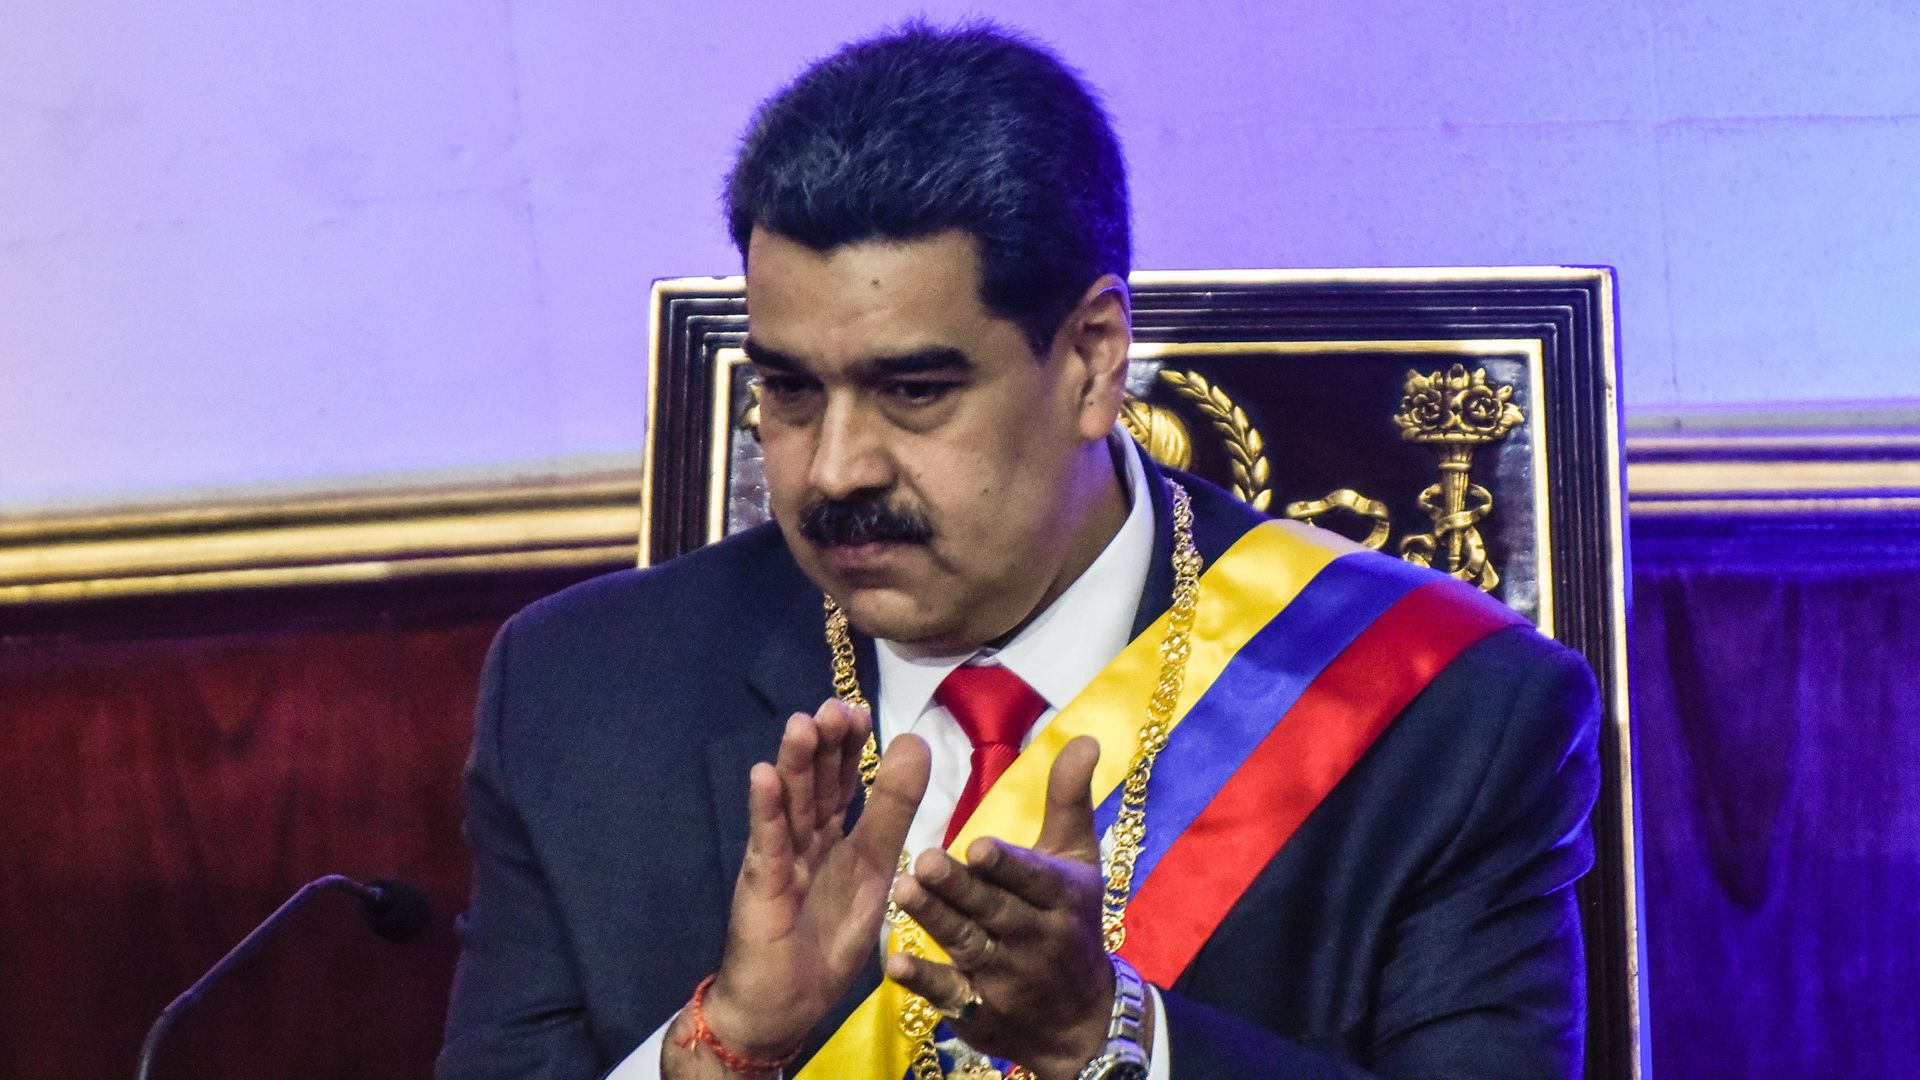 Venezuela's Maduro says he is firmly in control and won't be stopped by U.S. sanctions